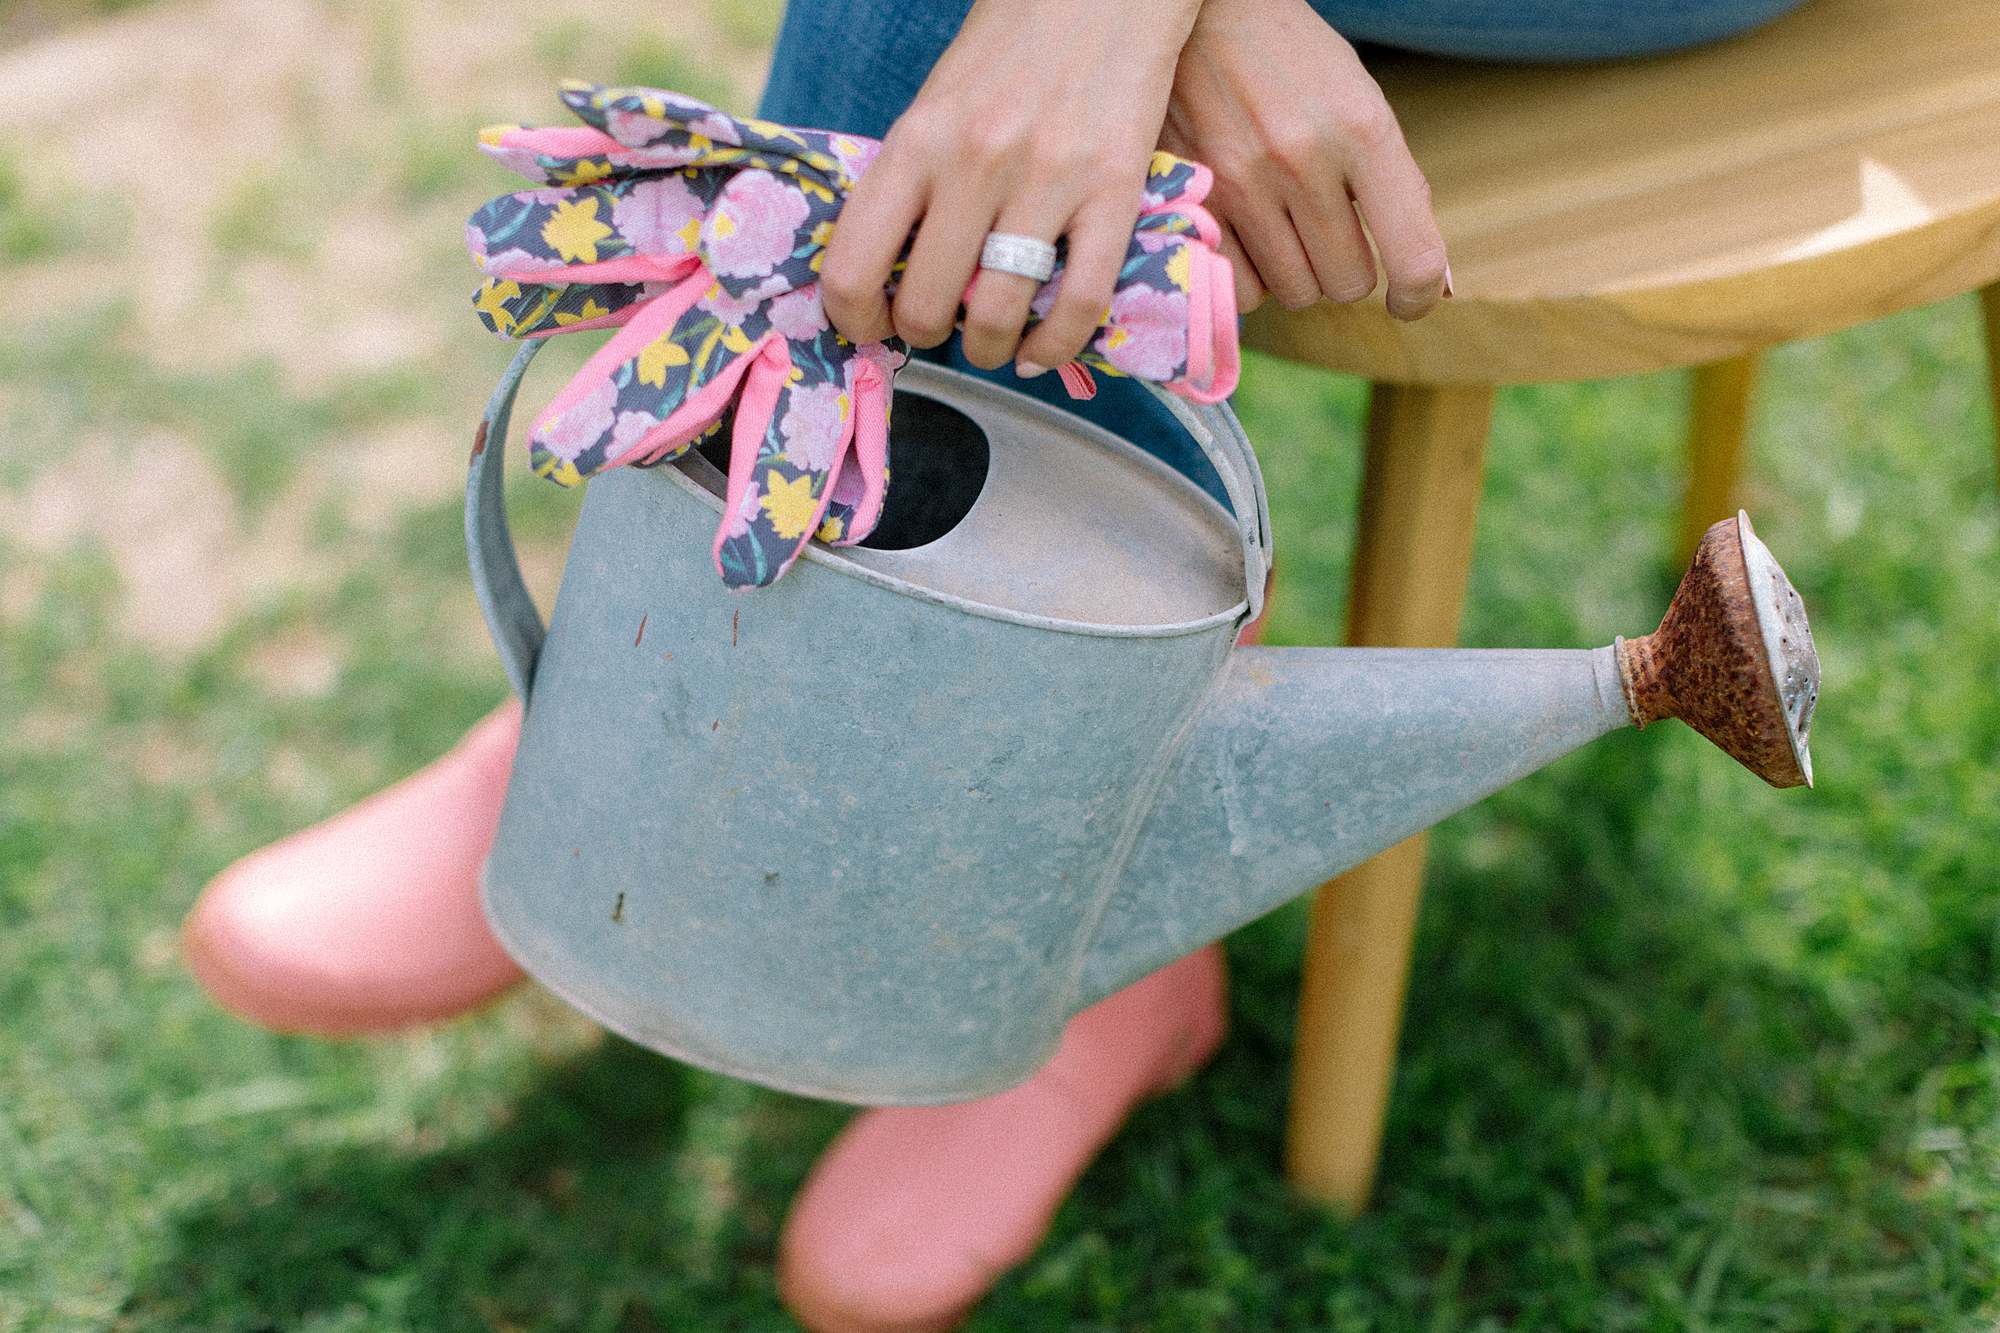 holding watering can and garden gloves floral